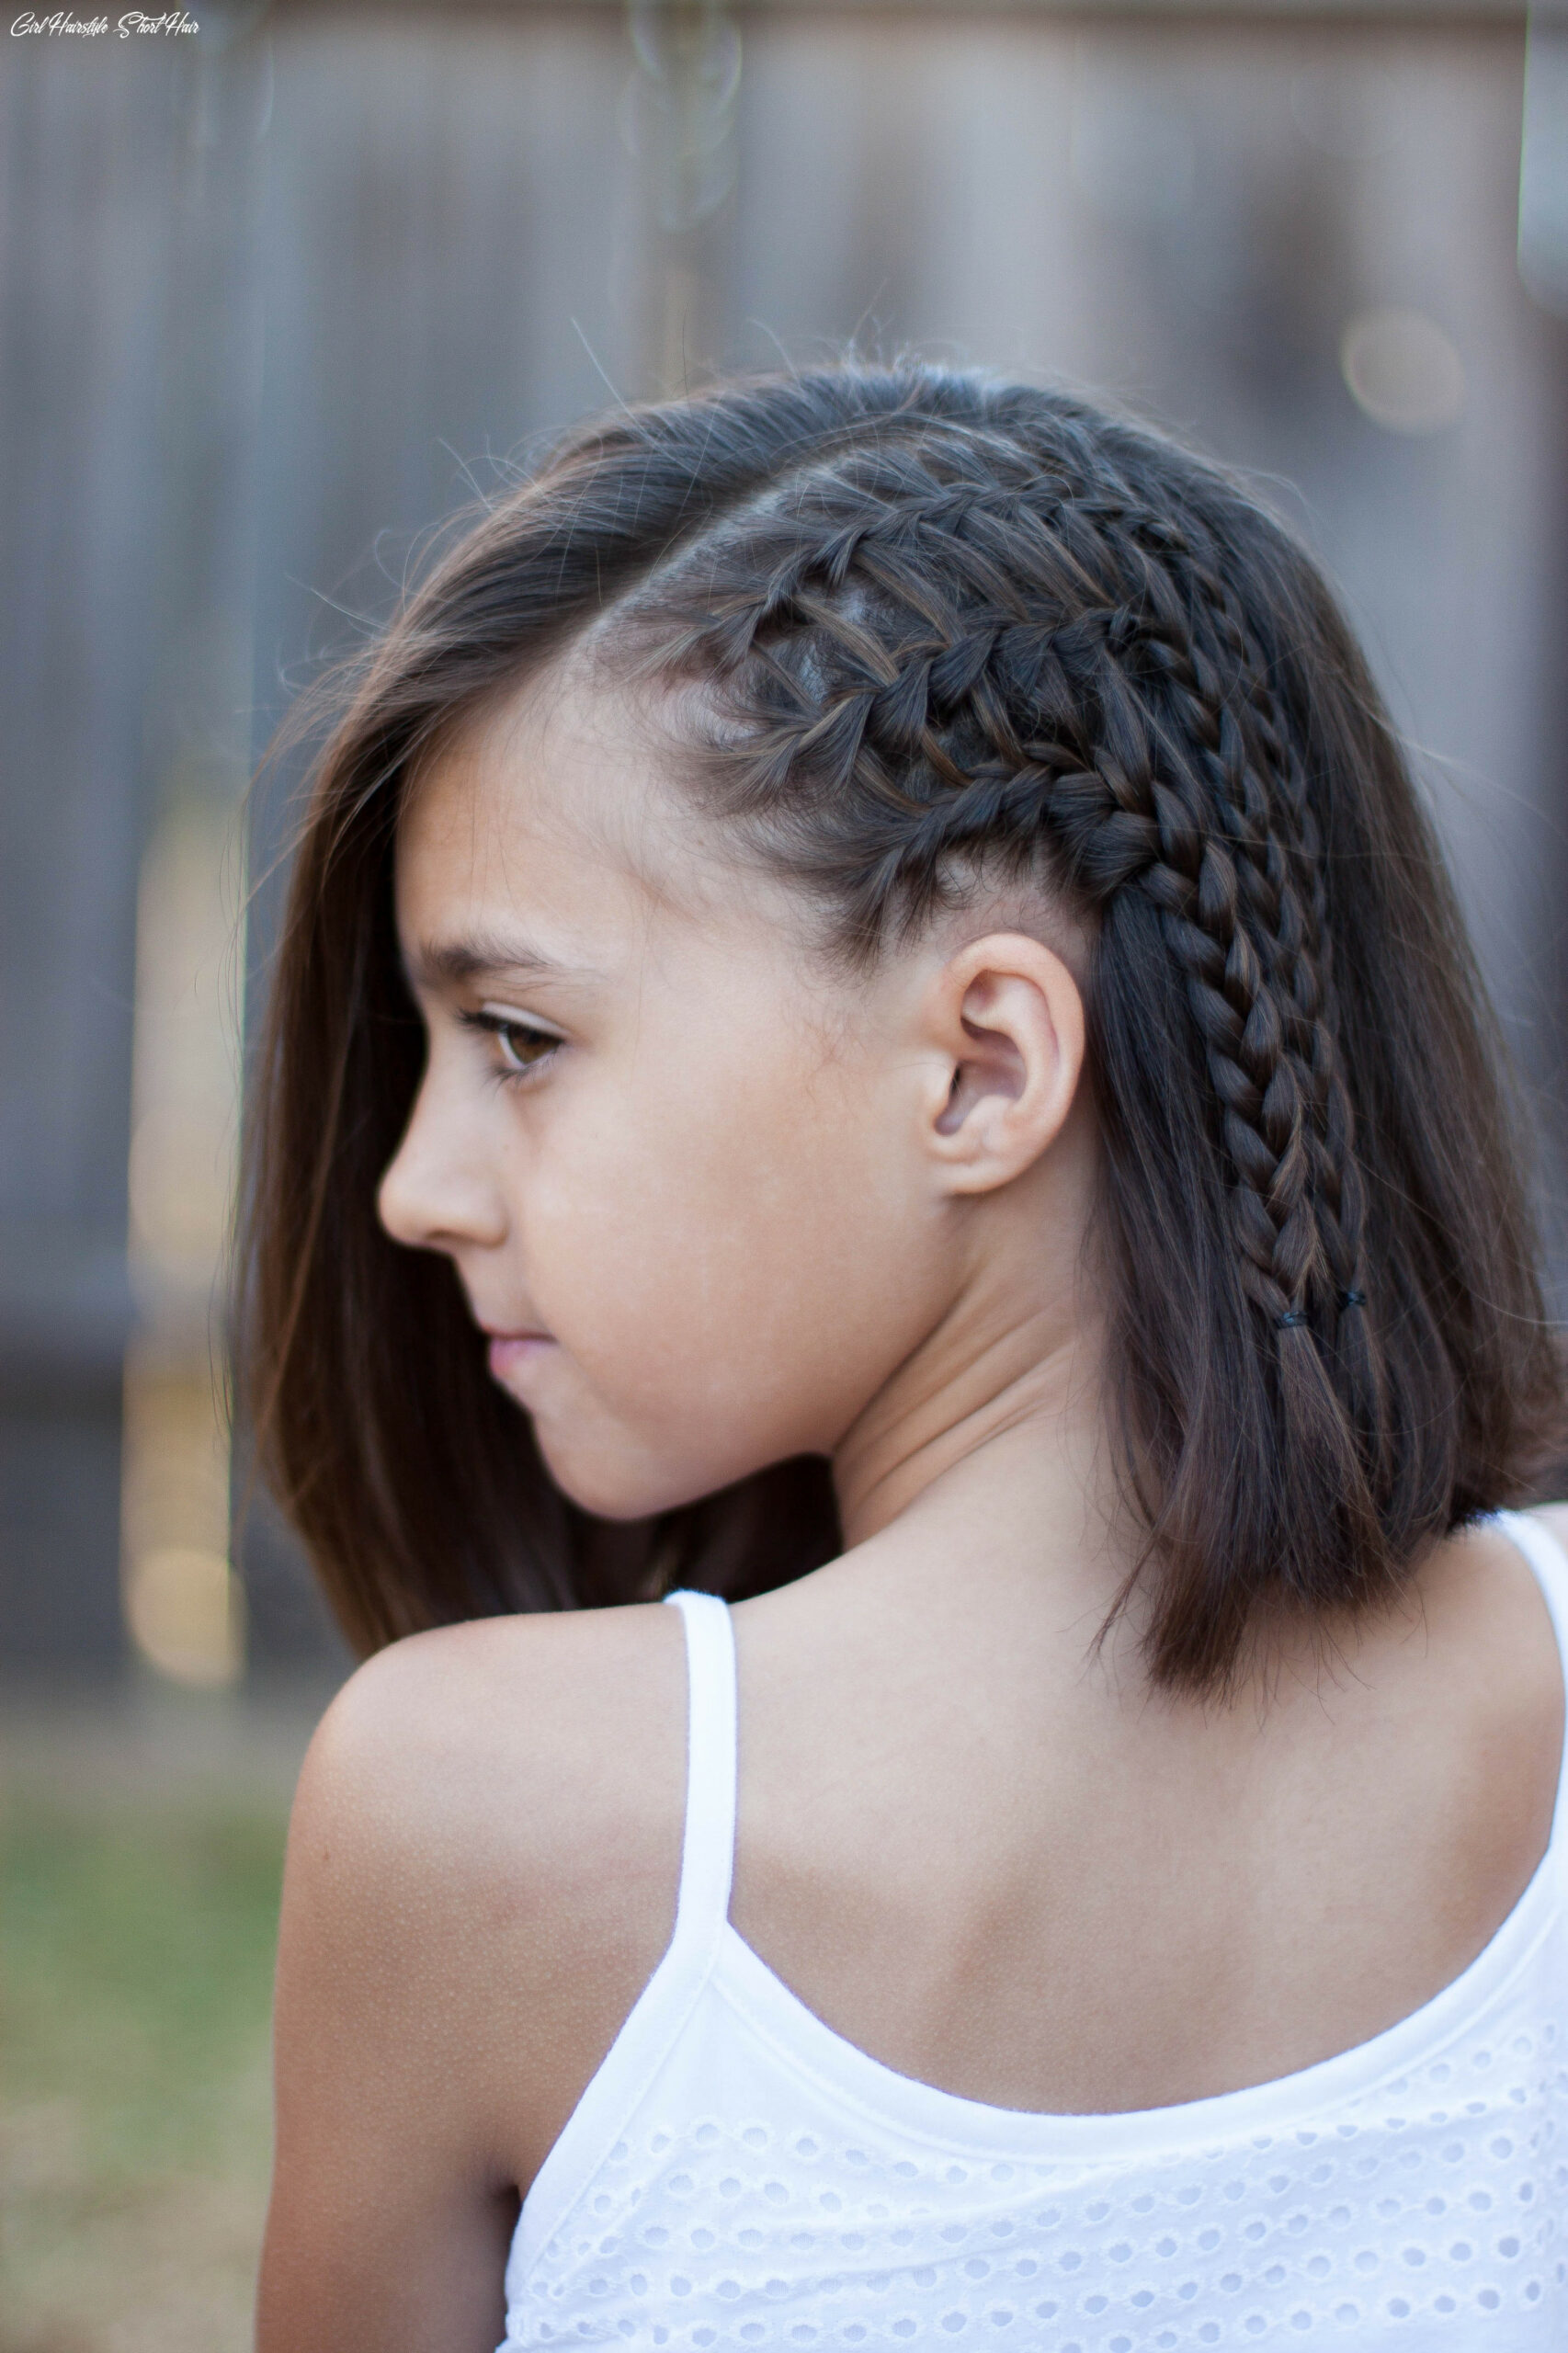 11 Braids for Short Hair - Cute Girls Hairstyles